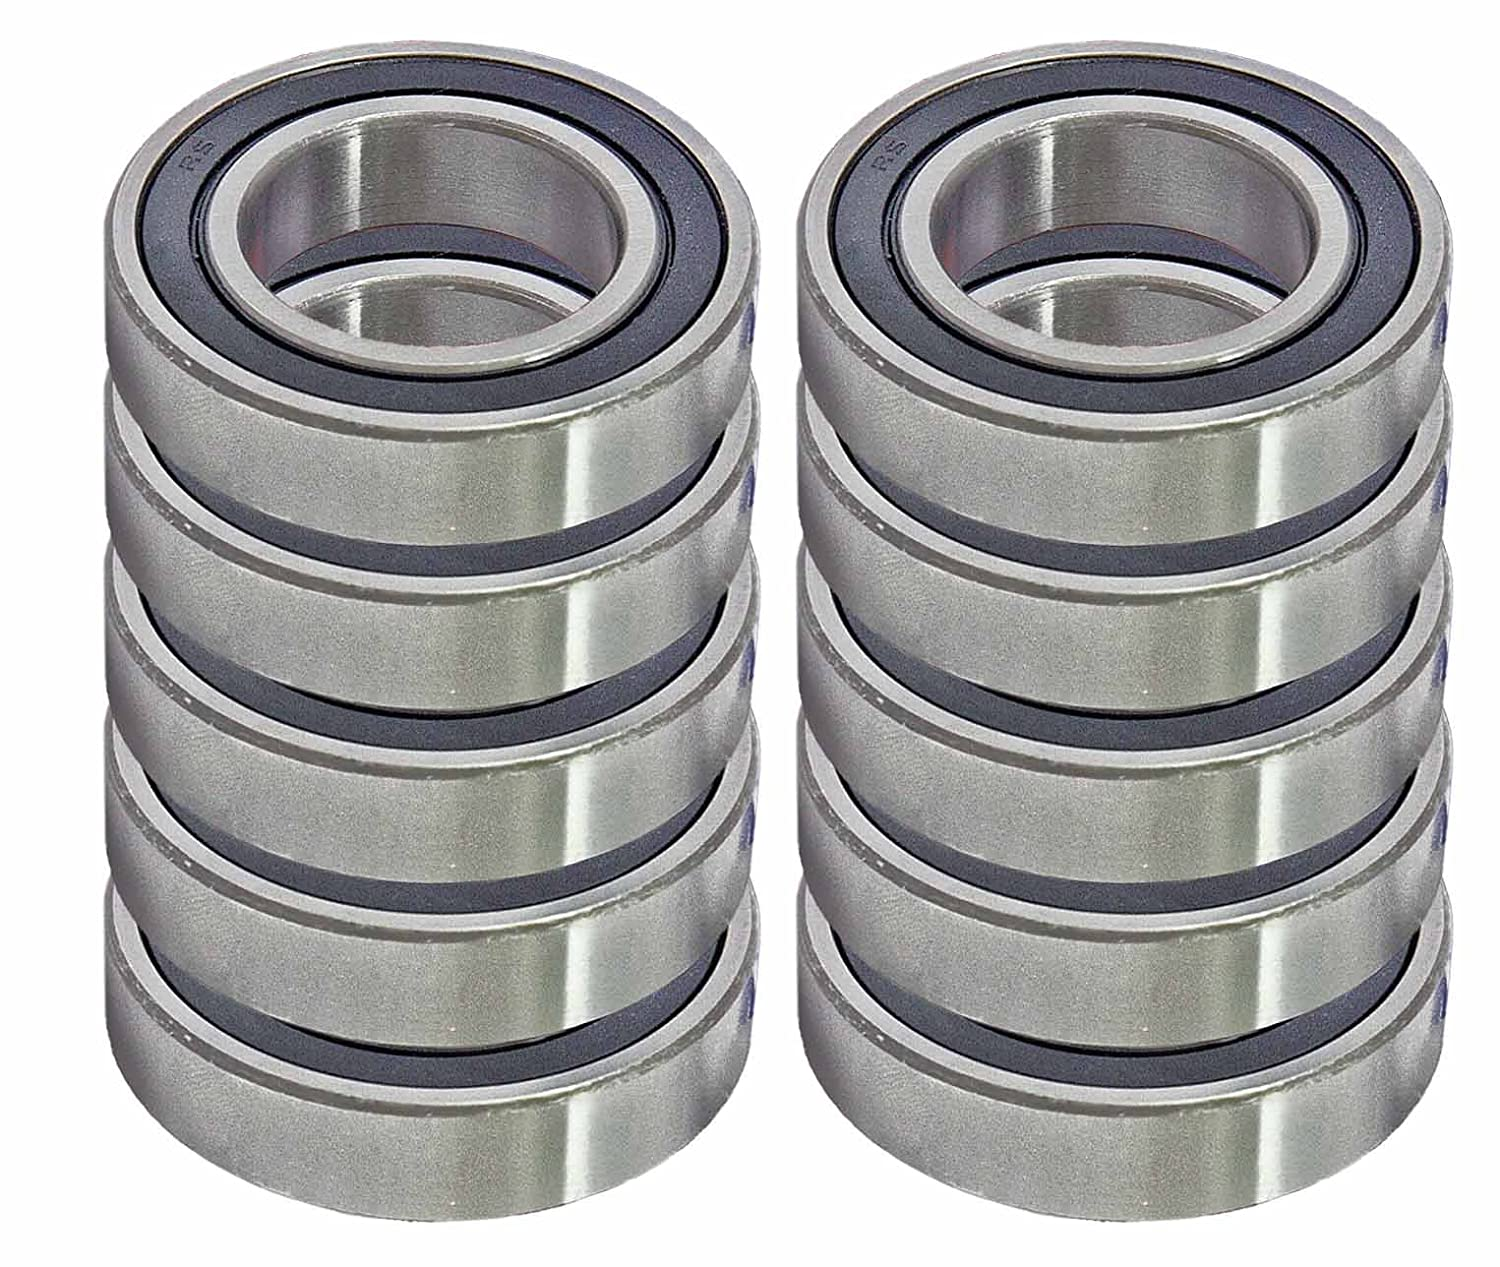 "Bearing 1616-2RS 1//2/""x 1 1//8/""x 3//8/"" Bearings Pack 10"